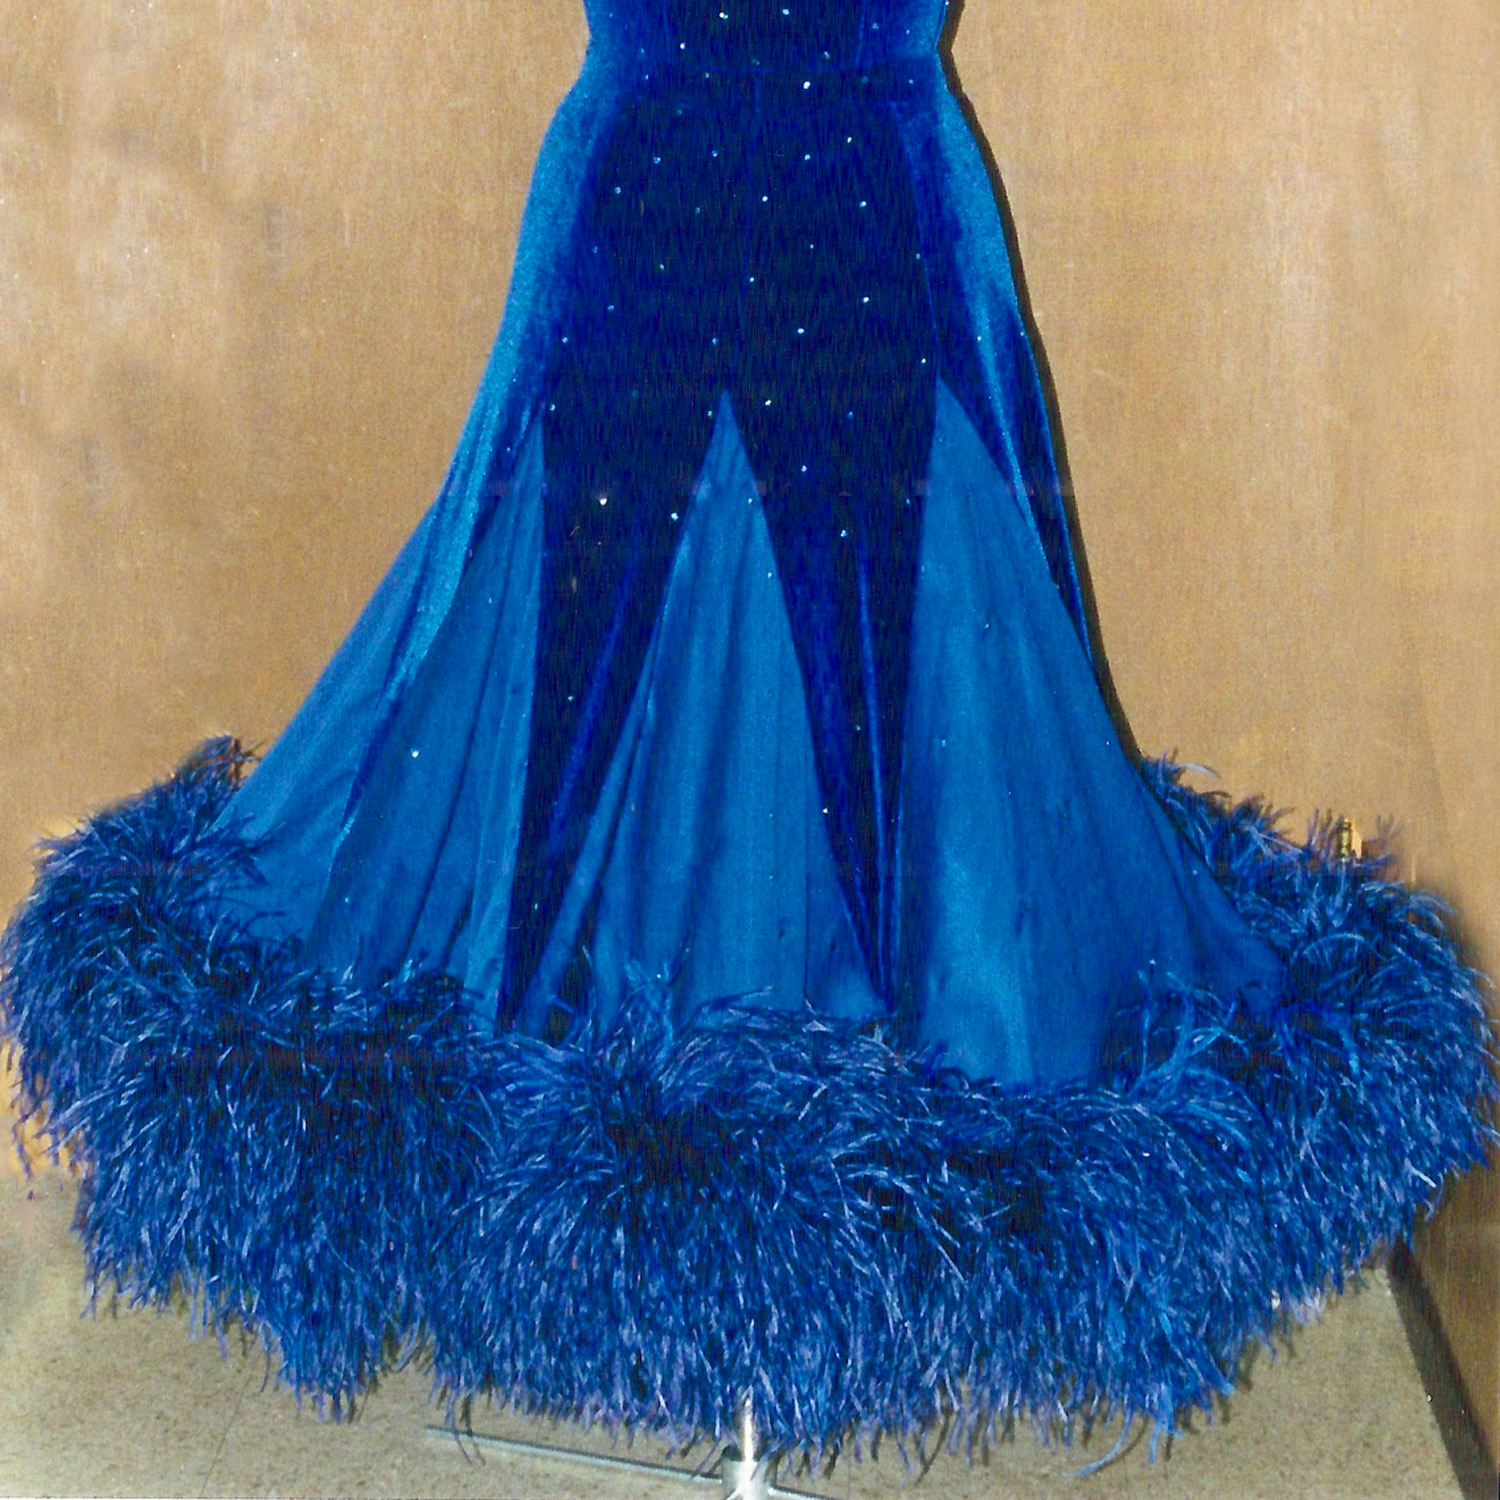 how to make pointed ballgown skirts for competition Dancesport, ballroom, Country dresses